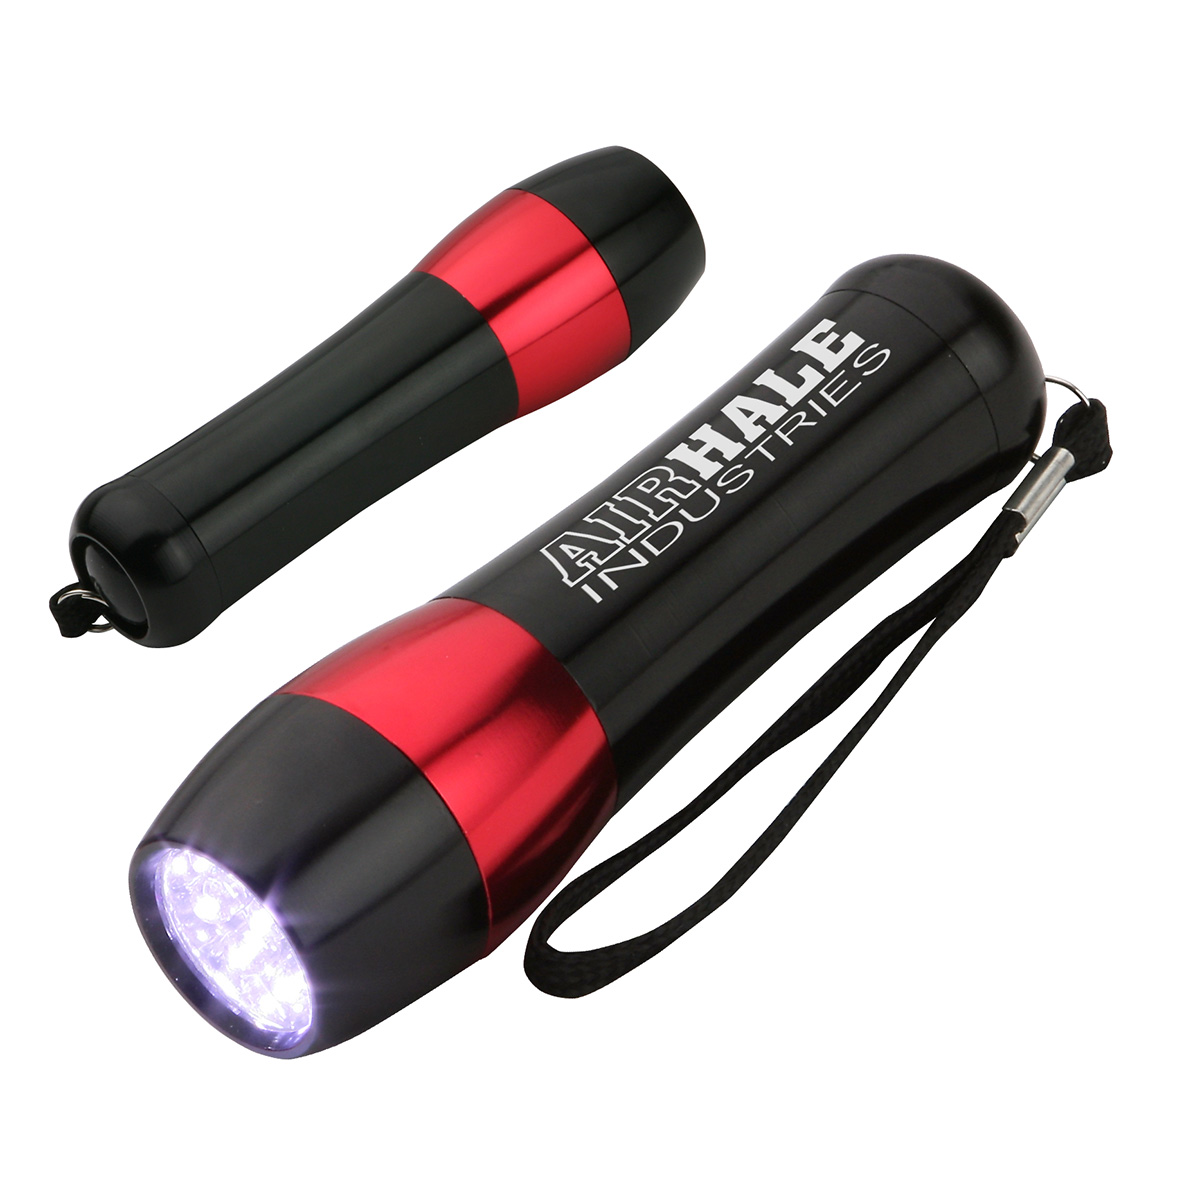 Aluminum LED Flashlight, WLT-NF12 - 1 Colour Imprint